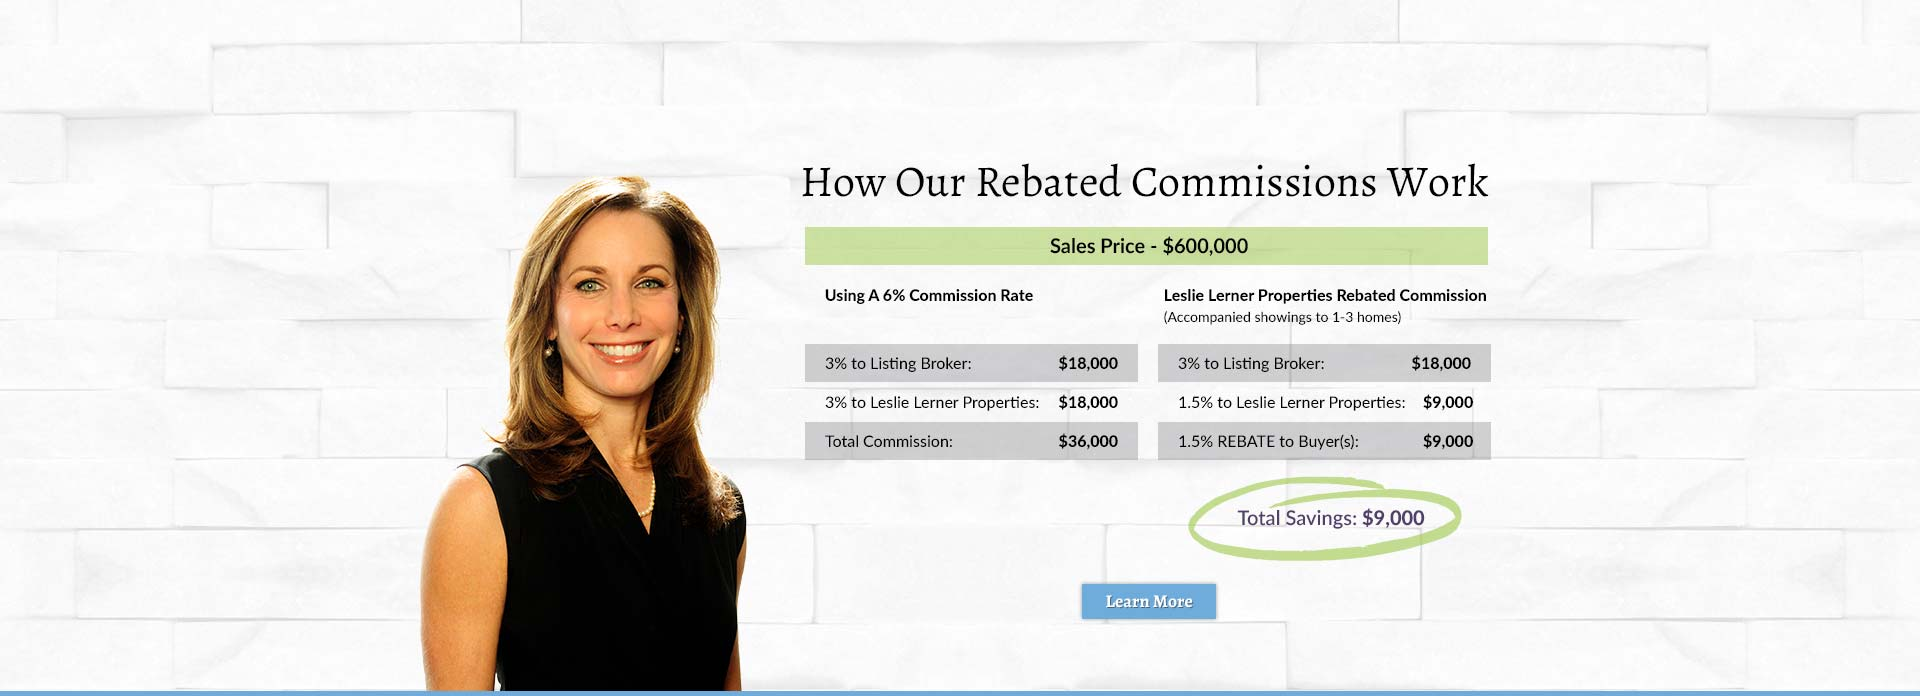 How Our Rebated Commissions Work